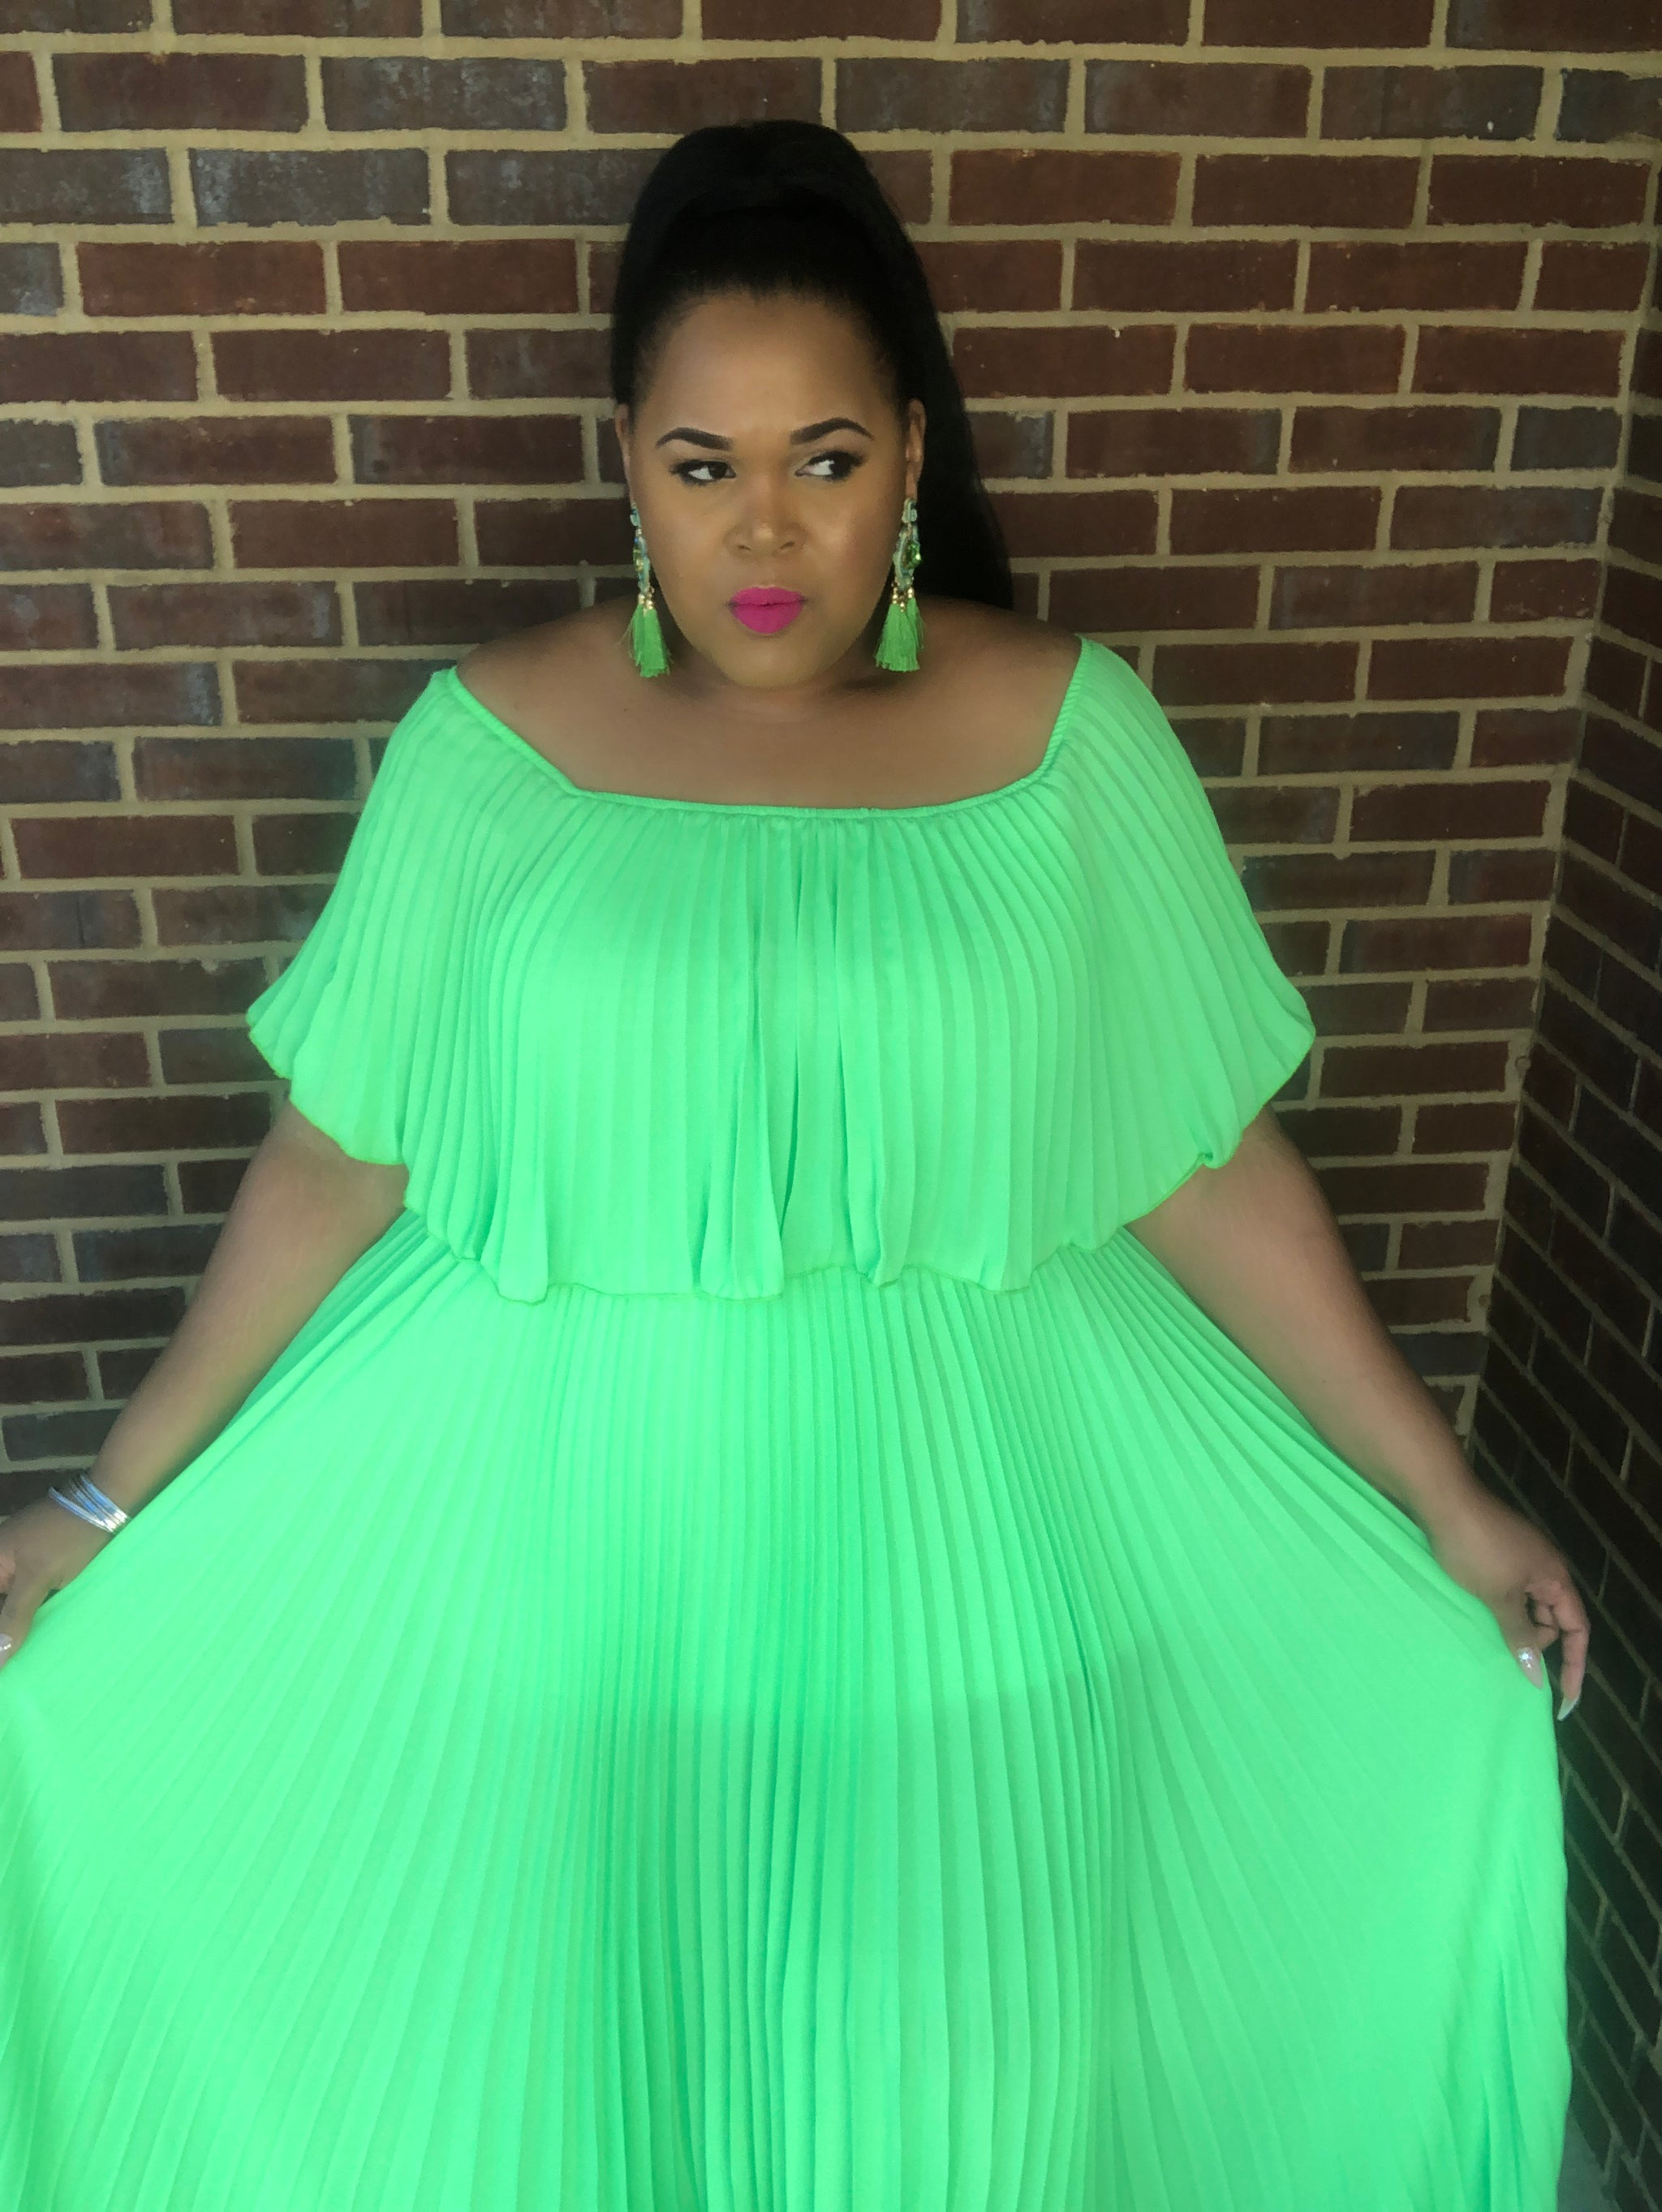 Sublime in Lime Dress